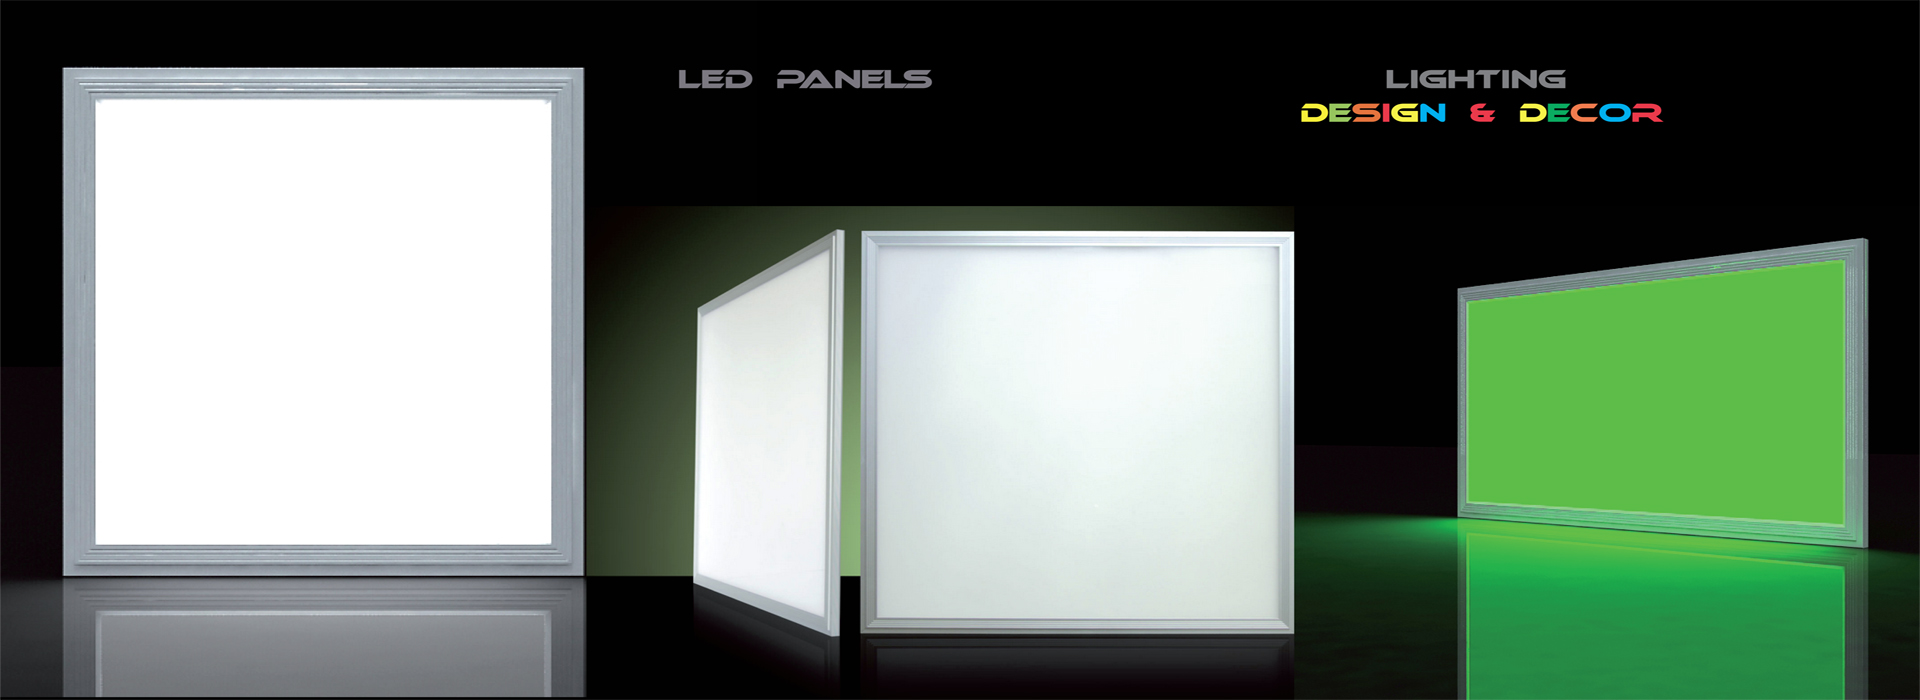 SLIDE LED PANELS DEF. 10.01